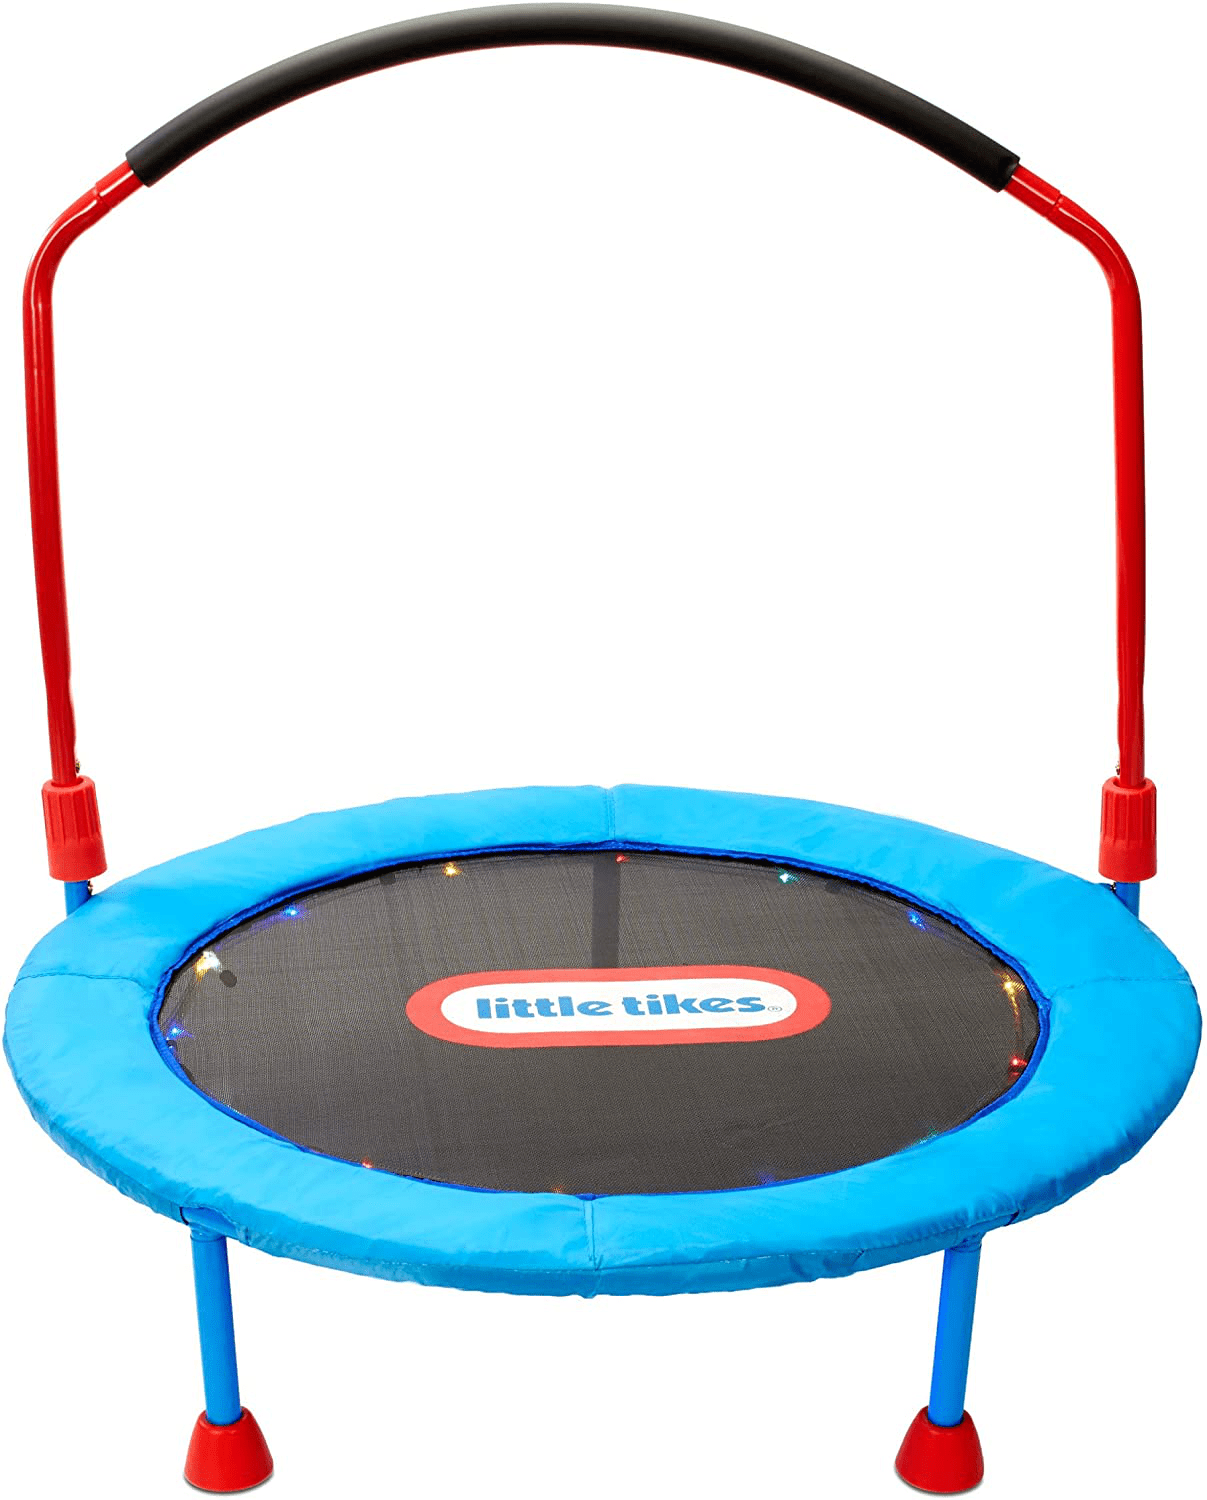 Little Tikes Light-Up 3-Foot Trampoline with Folding Handle Review